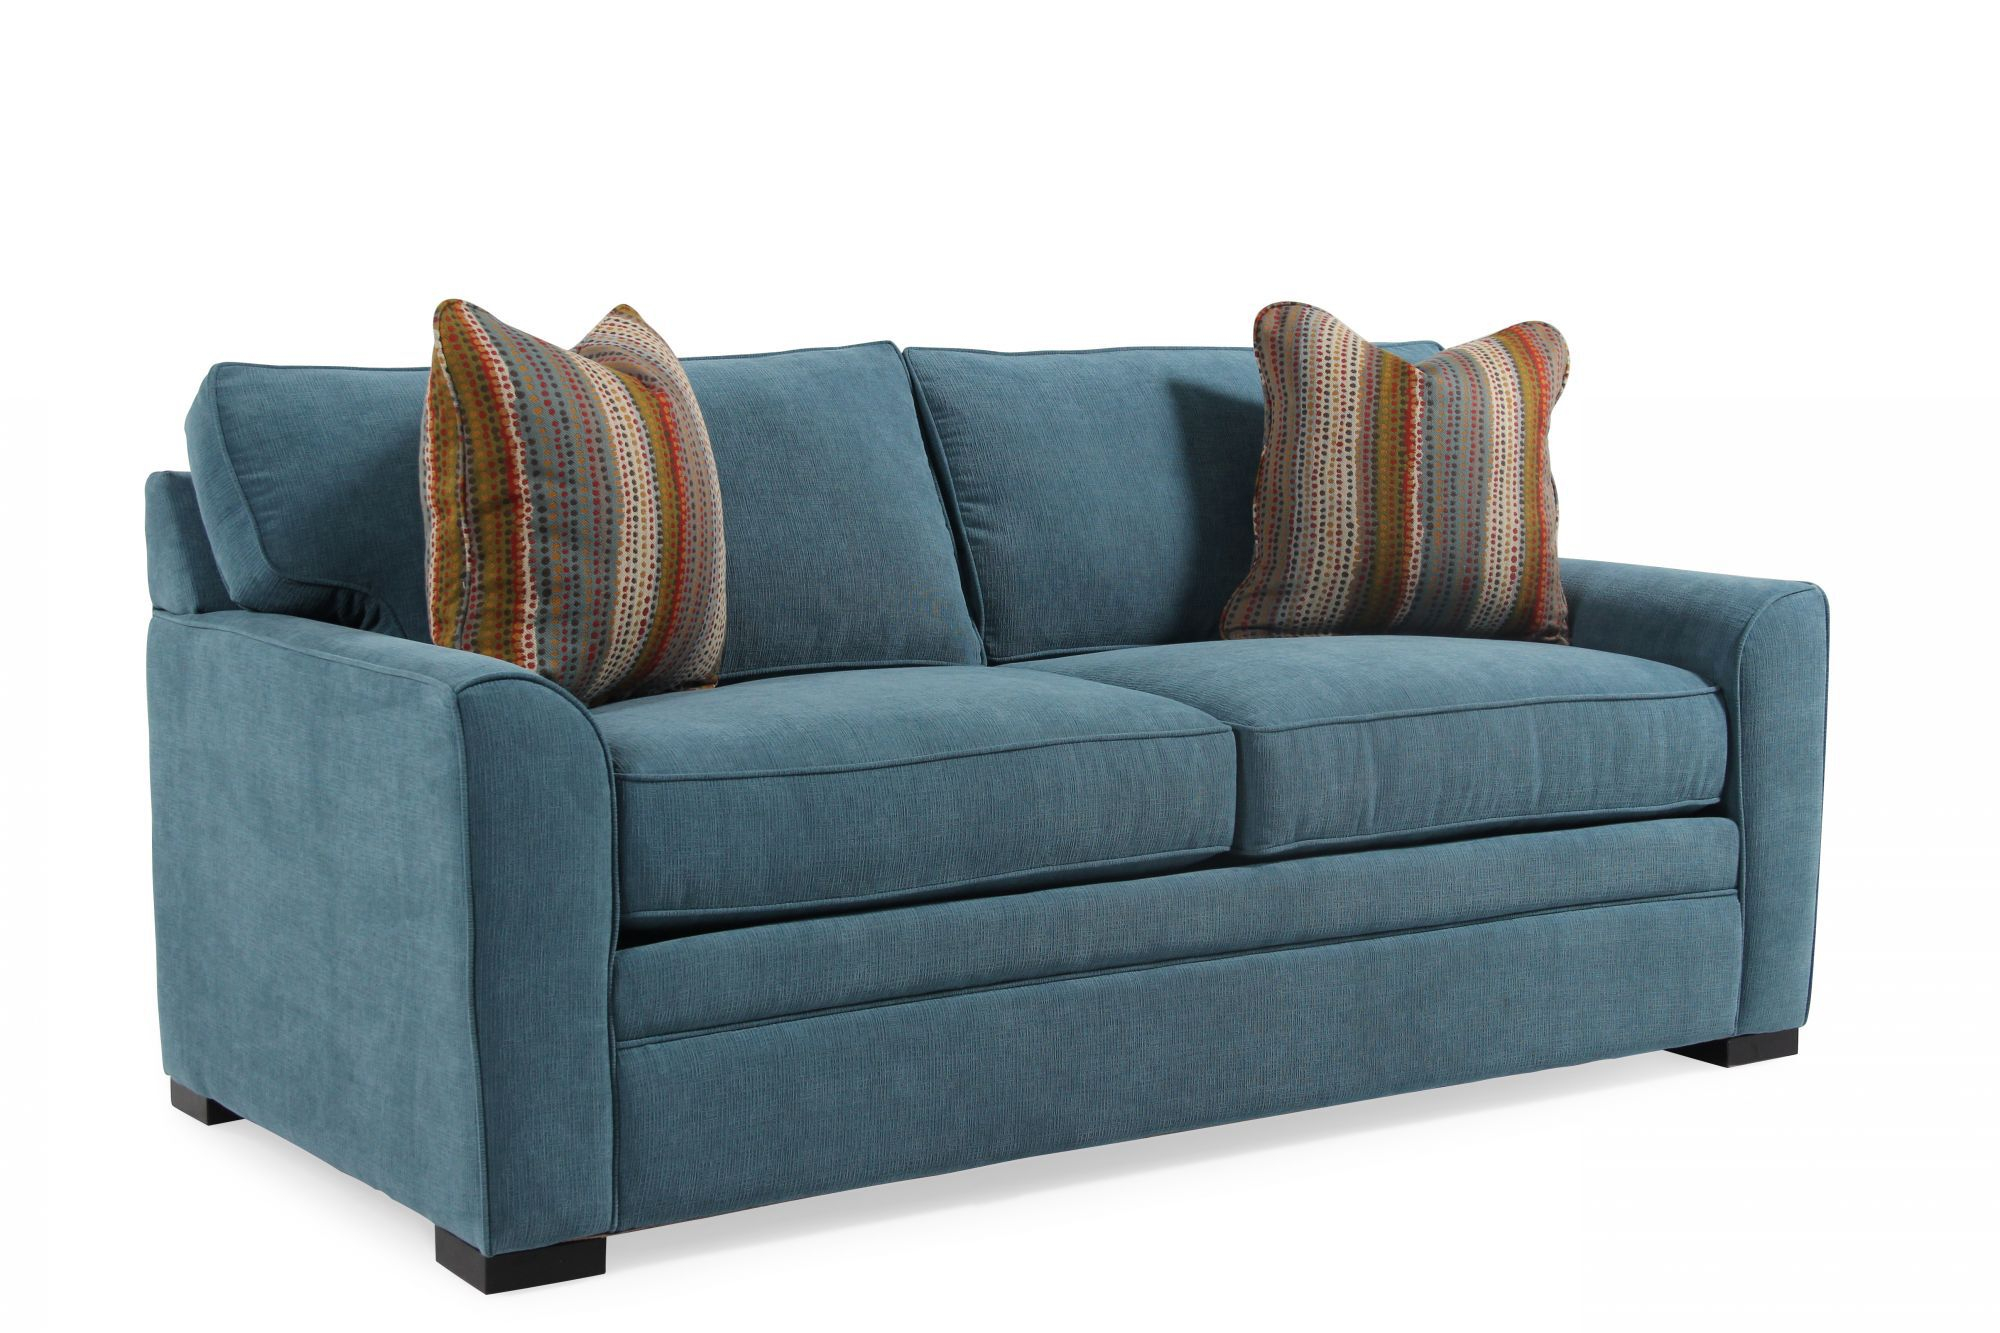 Transitional 83 Queen Sleeper Sofa In Sapphire Blue Mathis